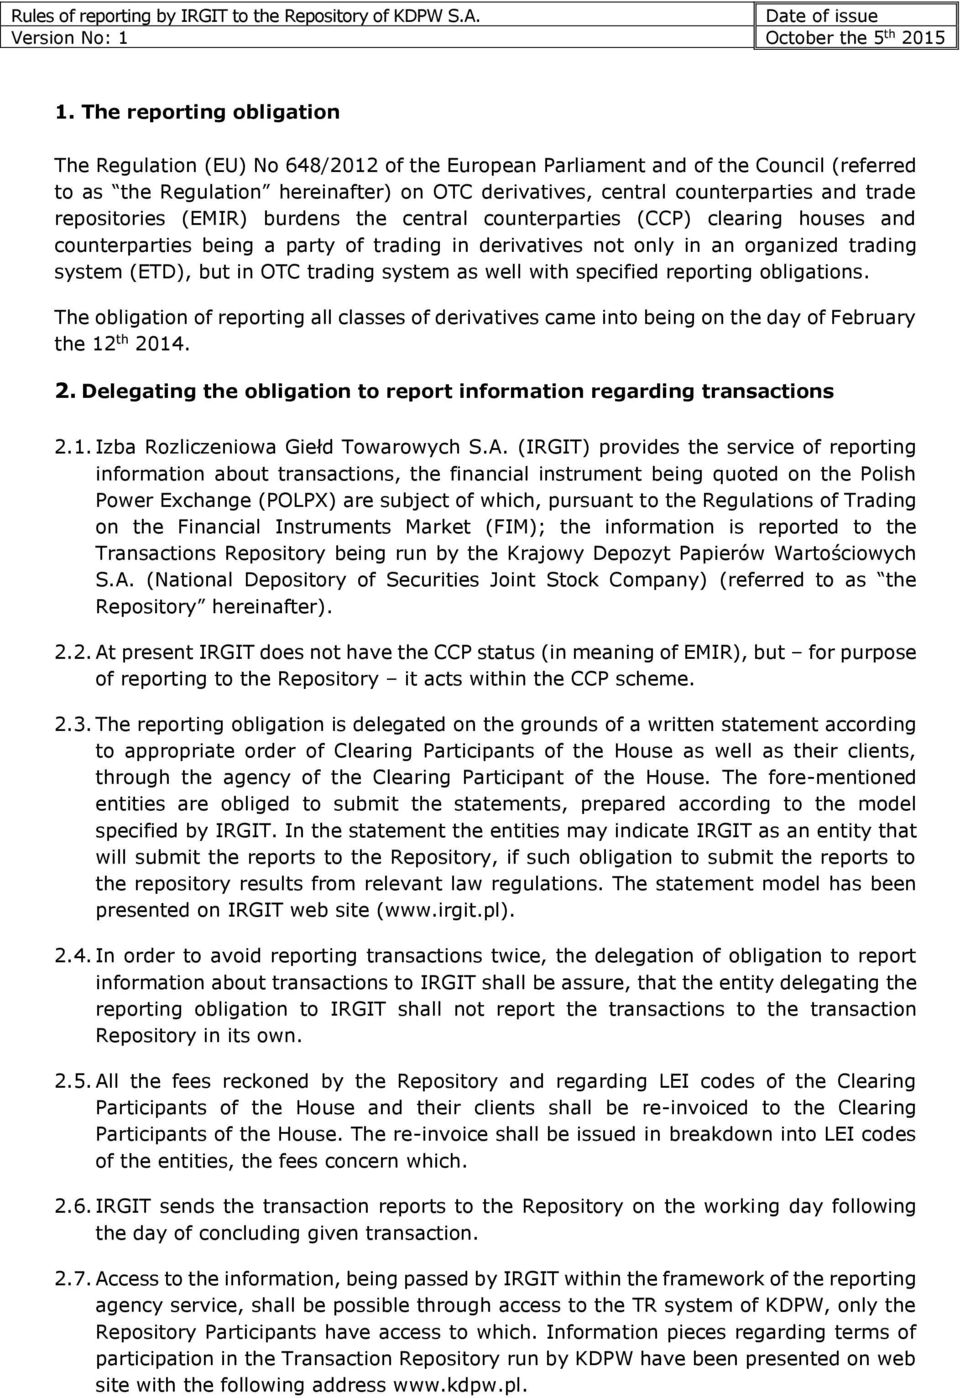 Rules Of Reporting By Irgit To The Repository Of Kdpw Sa Pdf